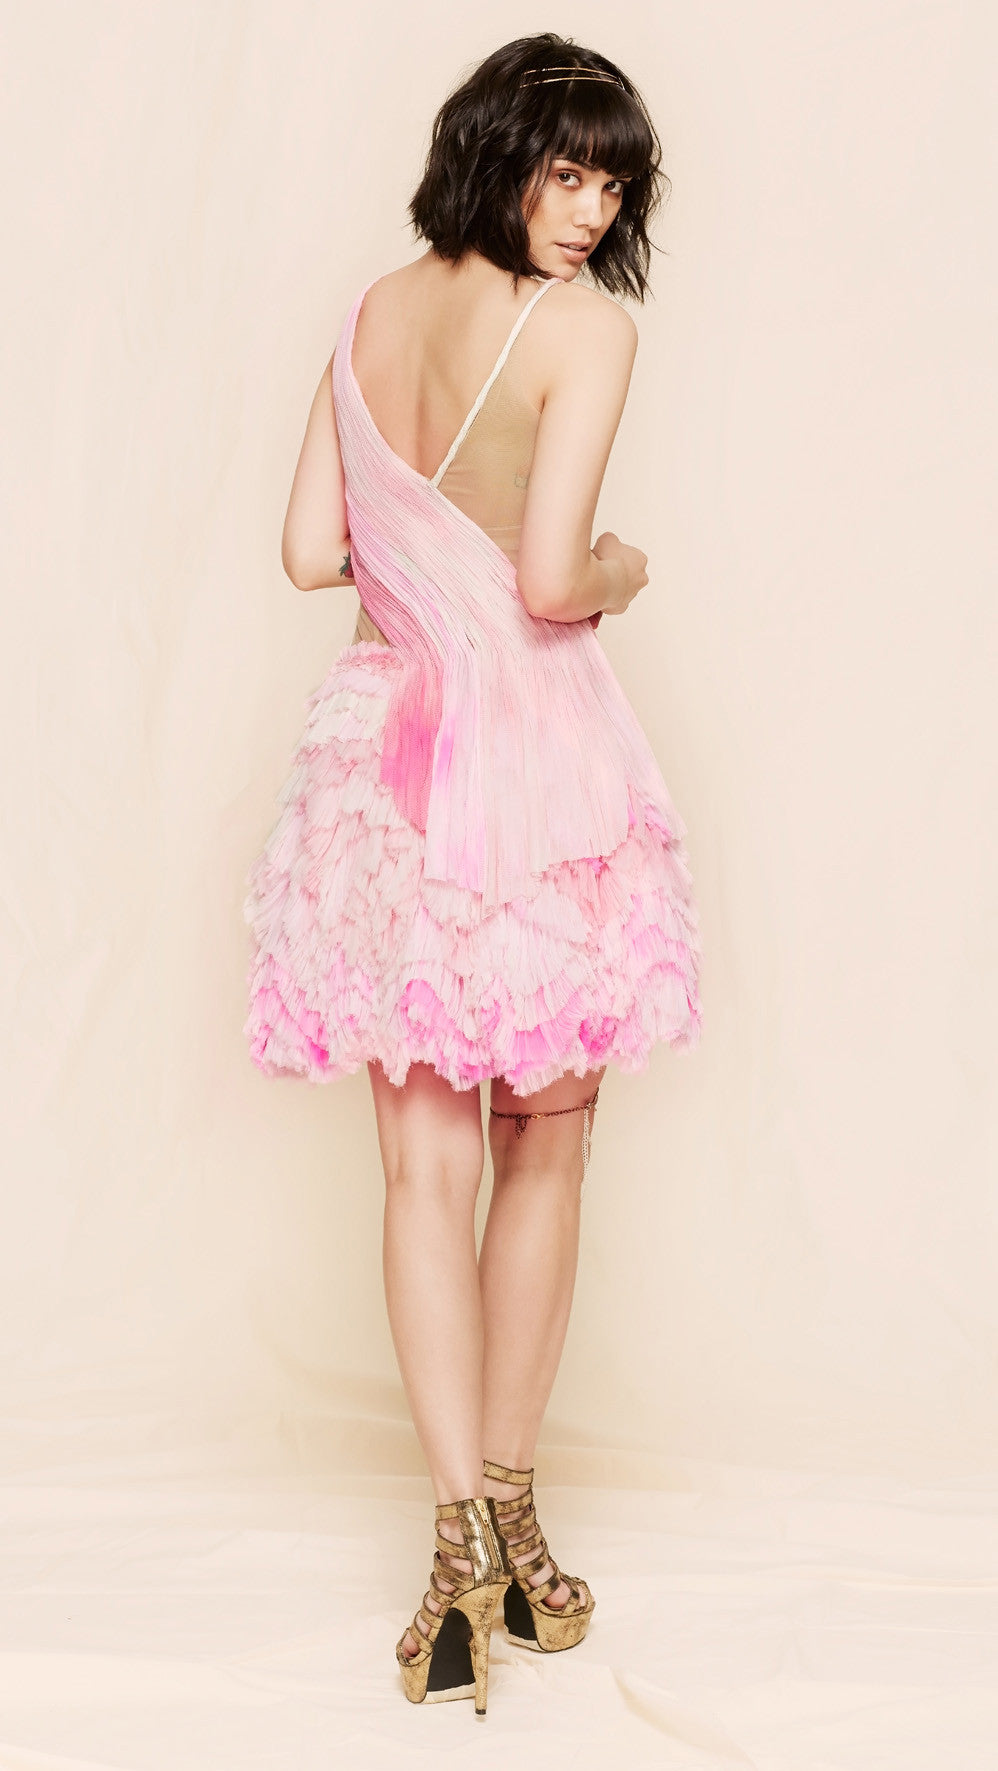 oda - bubblegum pink frothy dress - back view